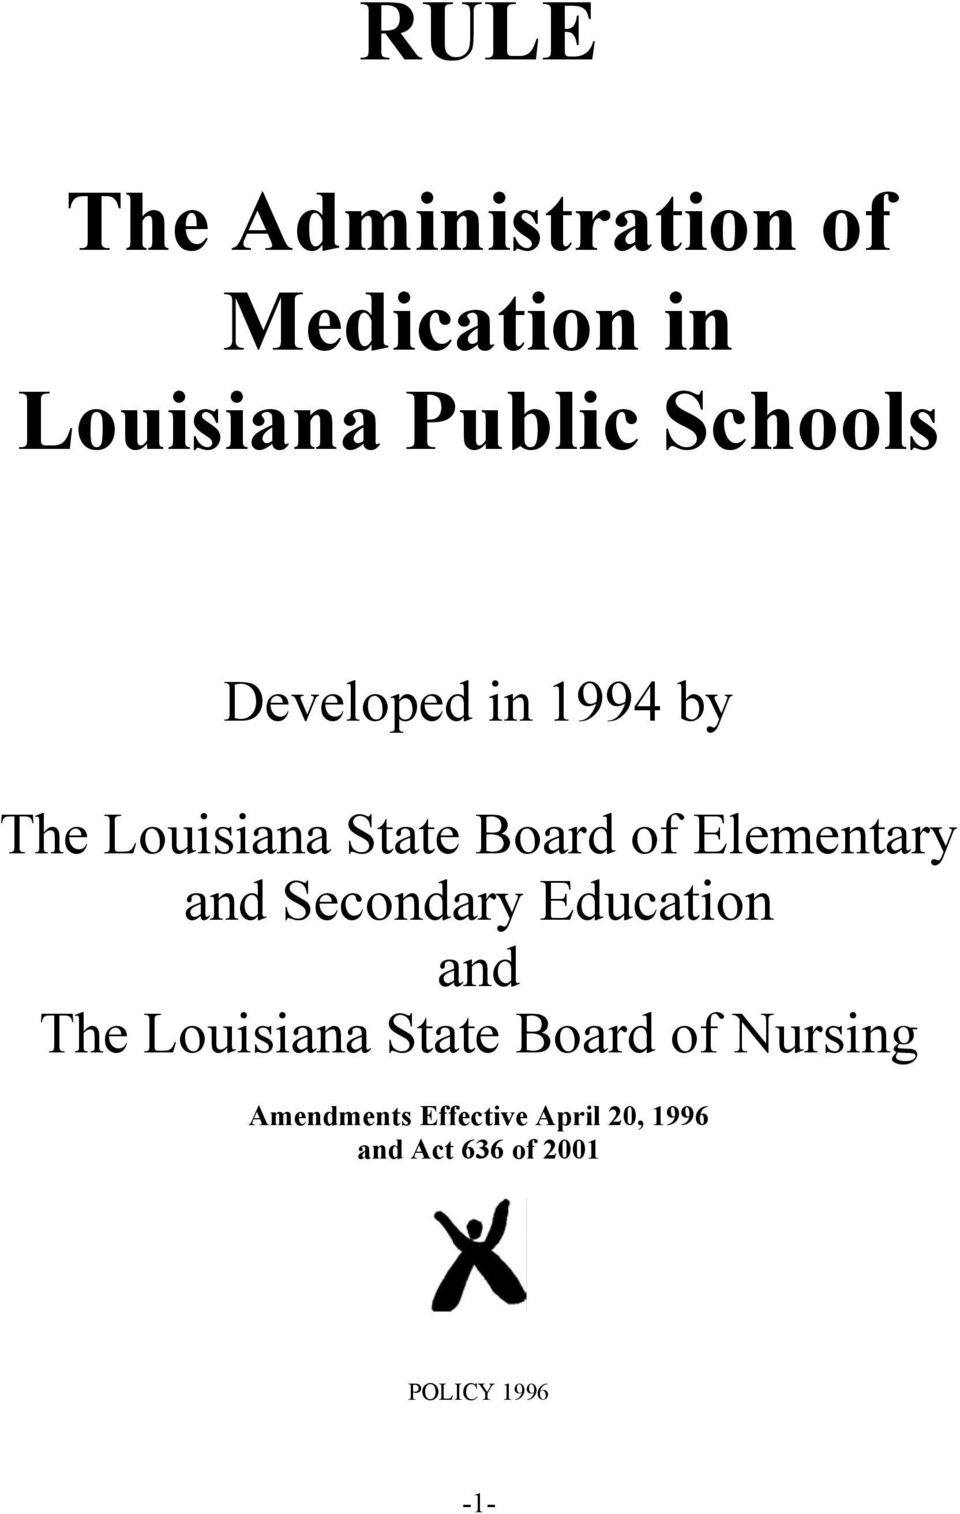 Secondary Education and The Louisiana State Board of Nursing